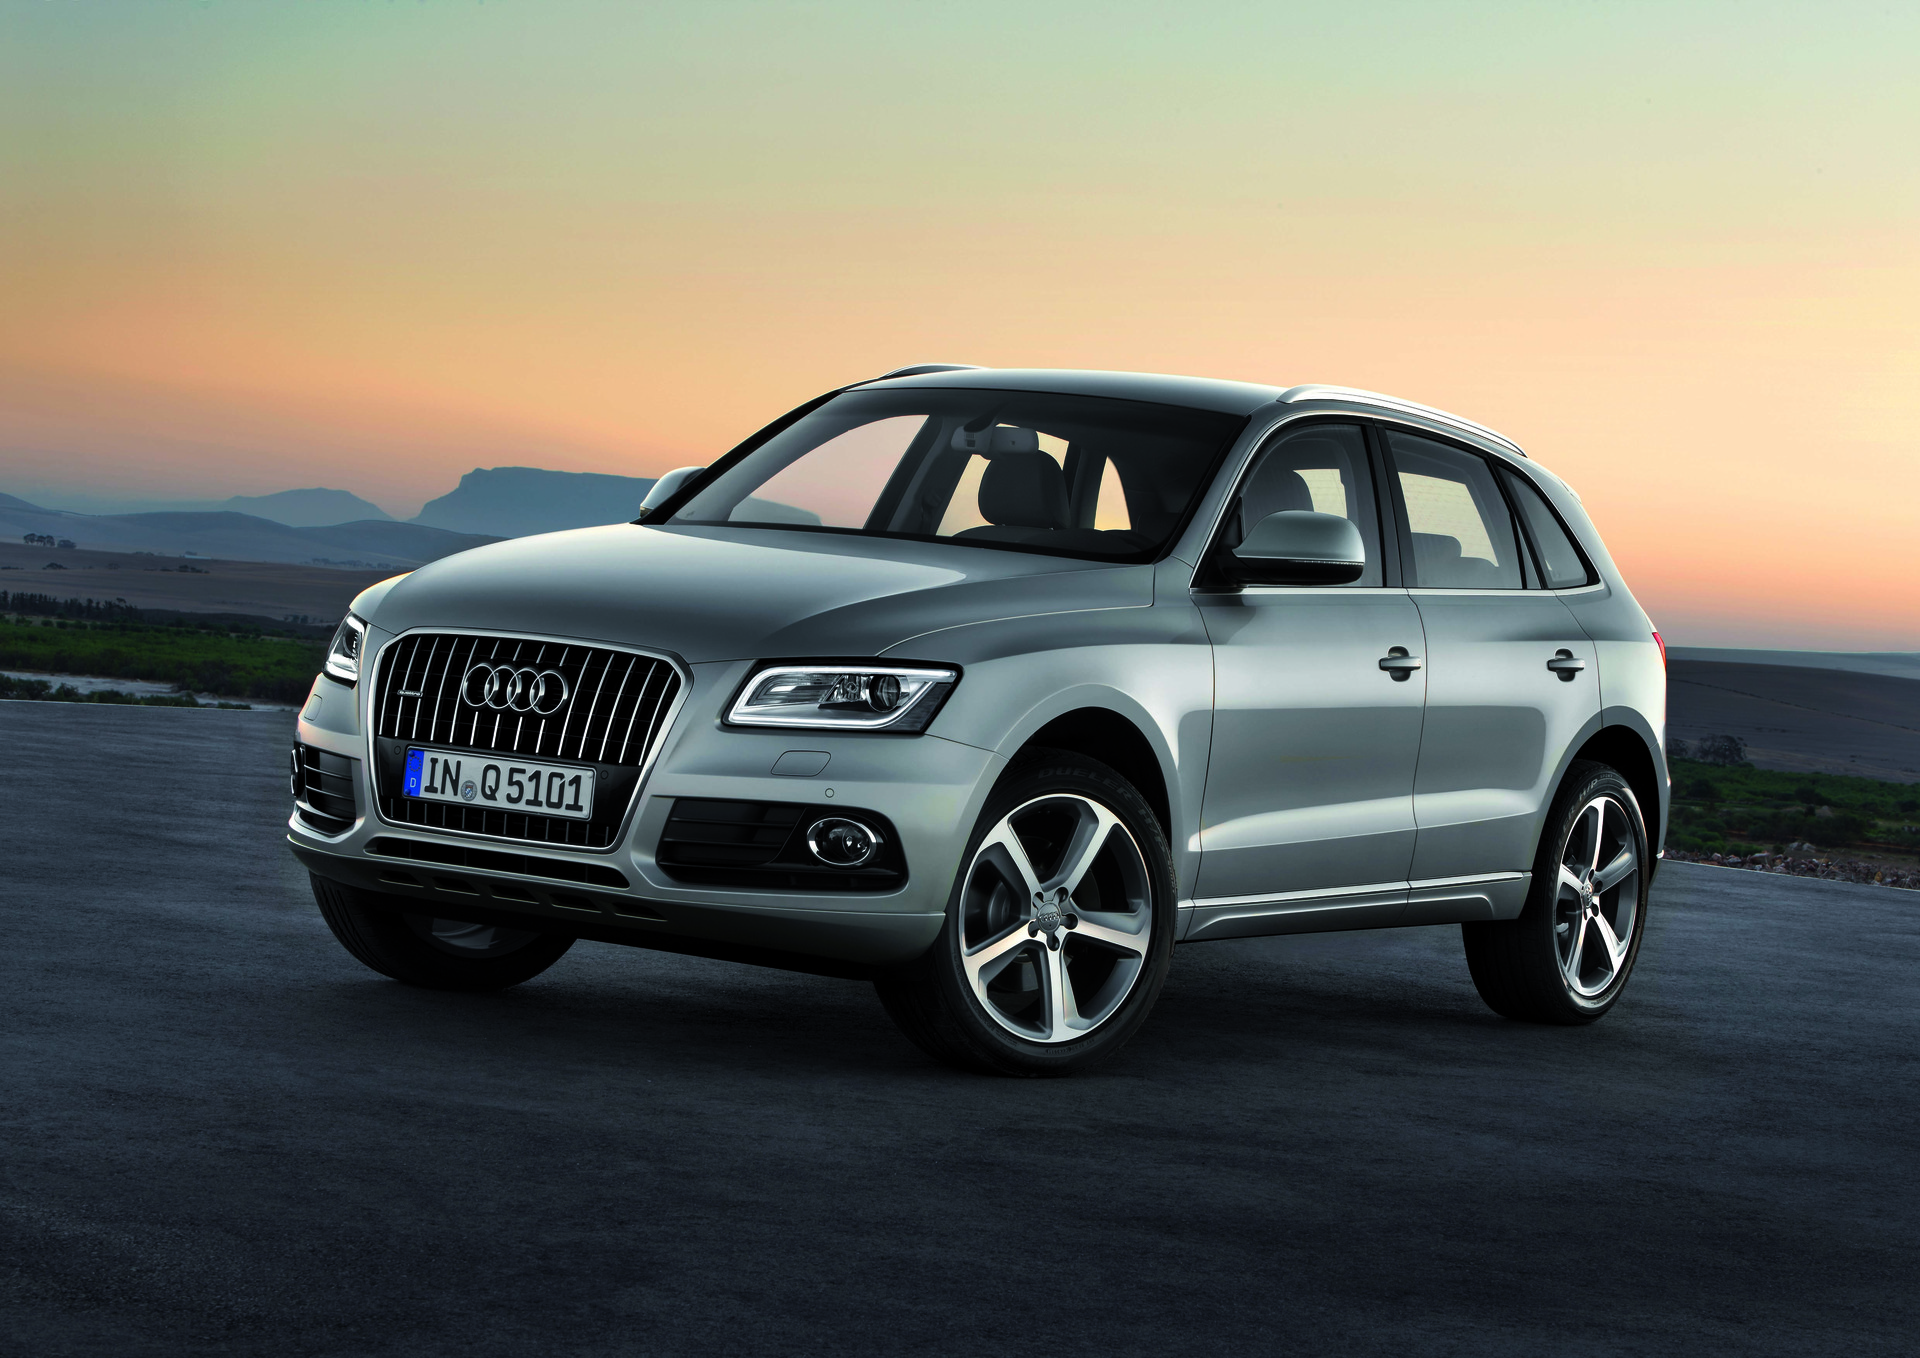 2016 audi q5 prices and expert review the car connection. Black Bedroom Furniture Sets. Home Design Ideas